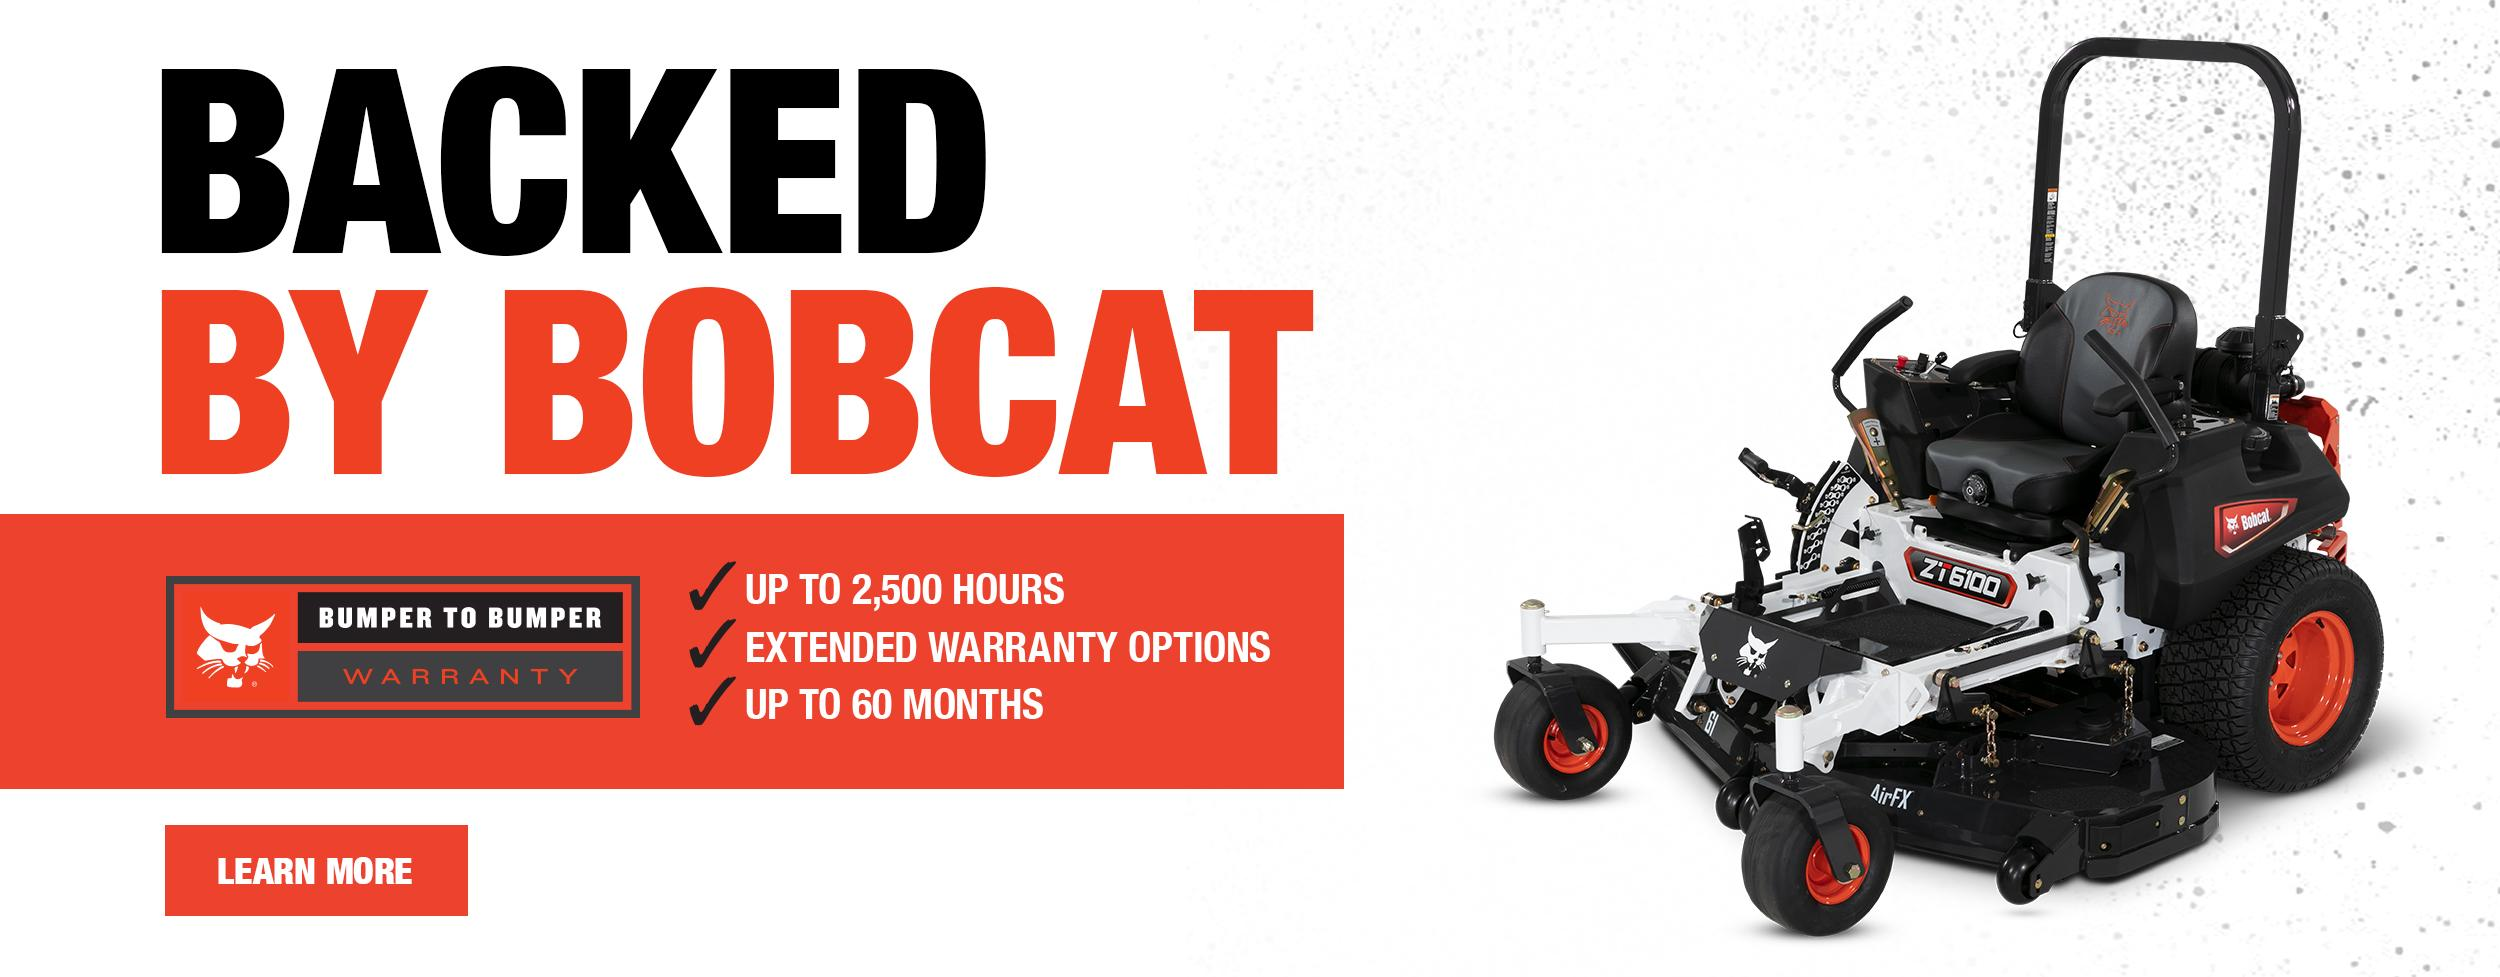 New Bobcat Zero-Turn Mower Side View